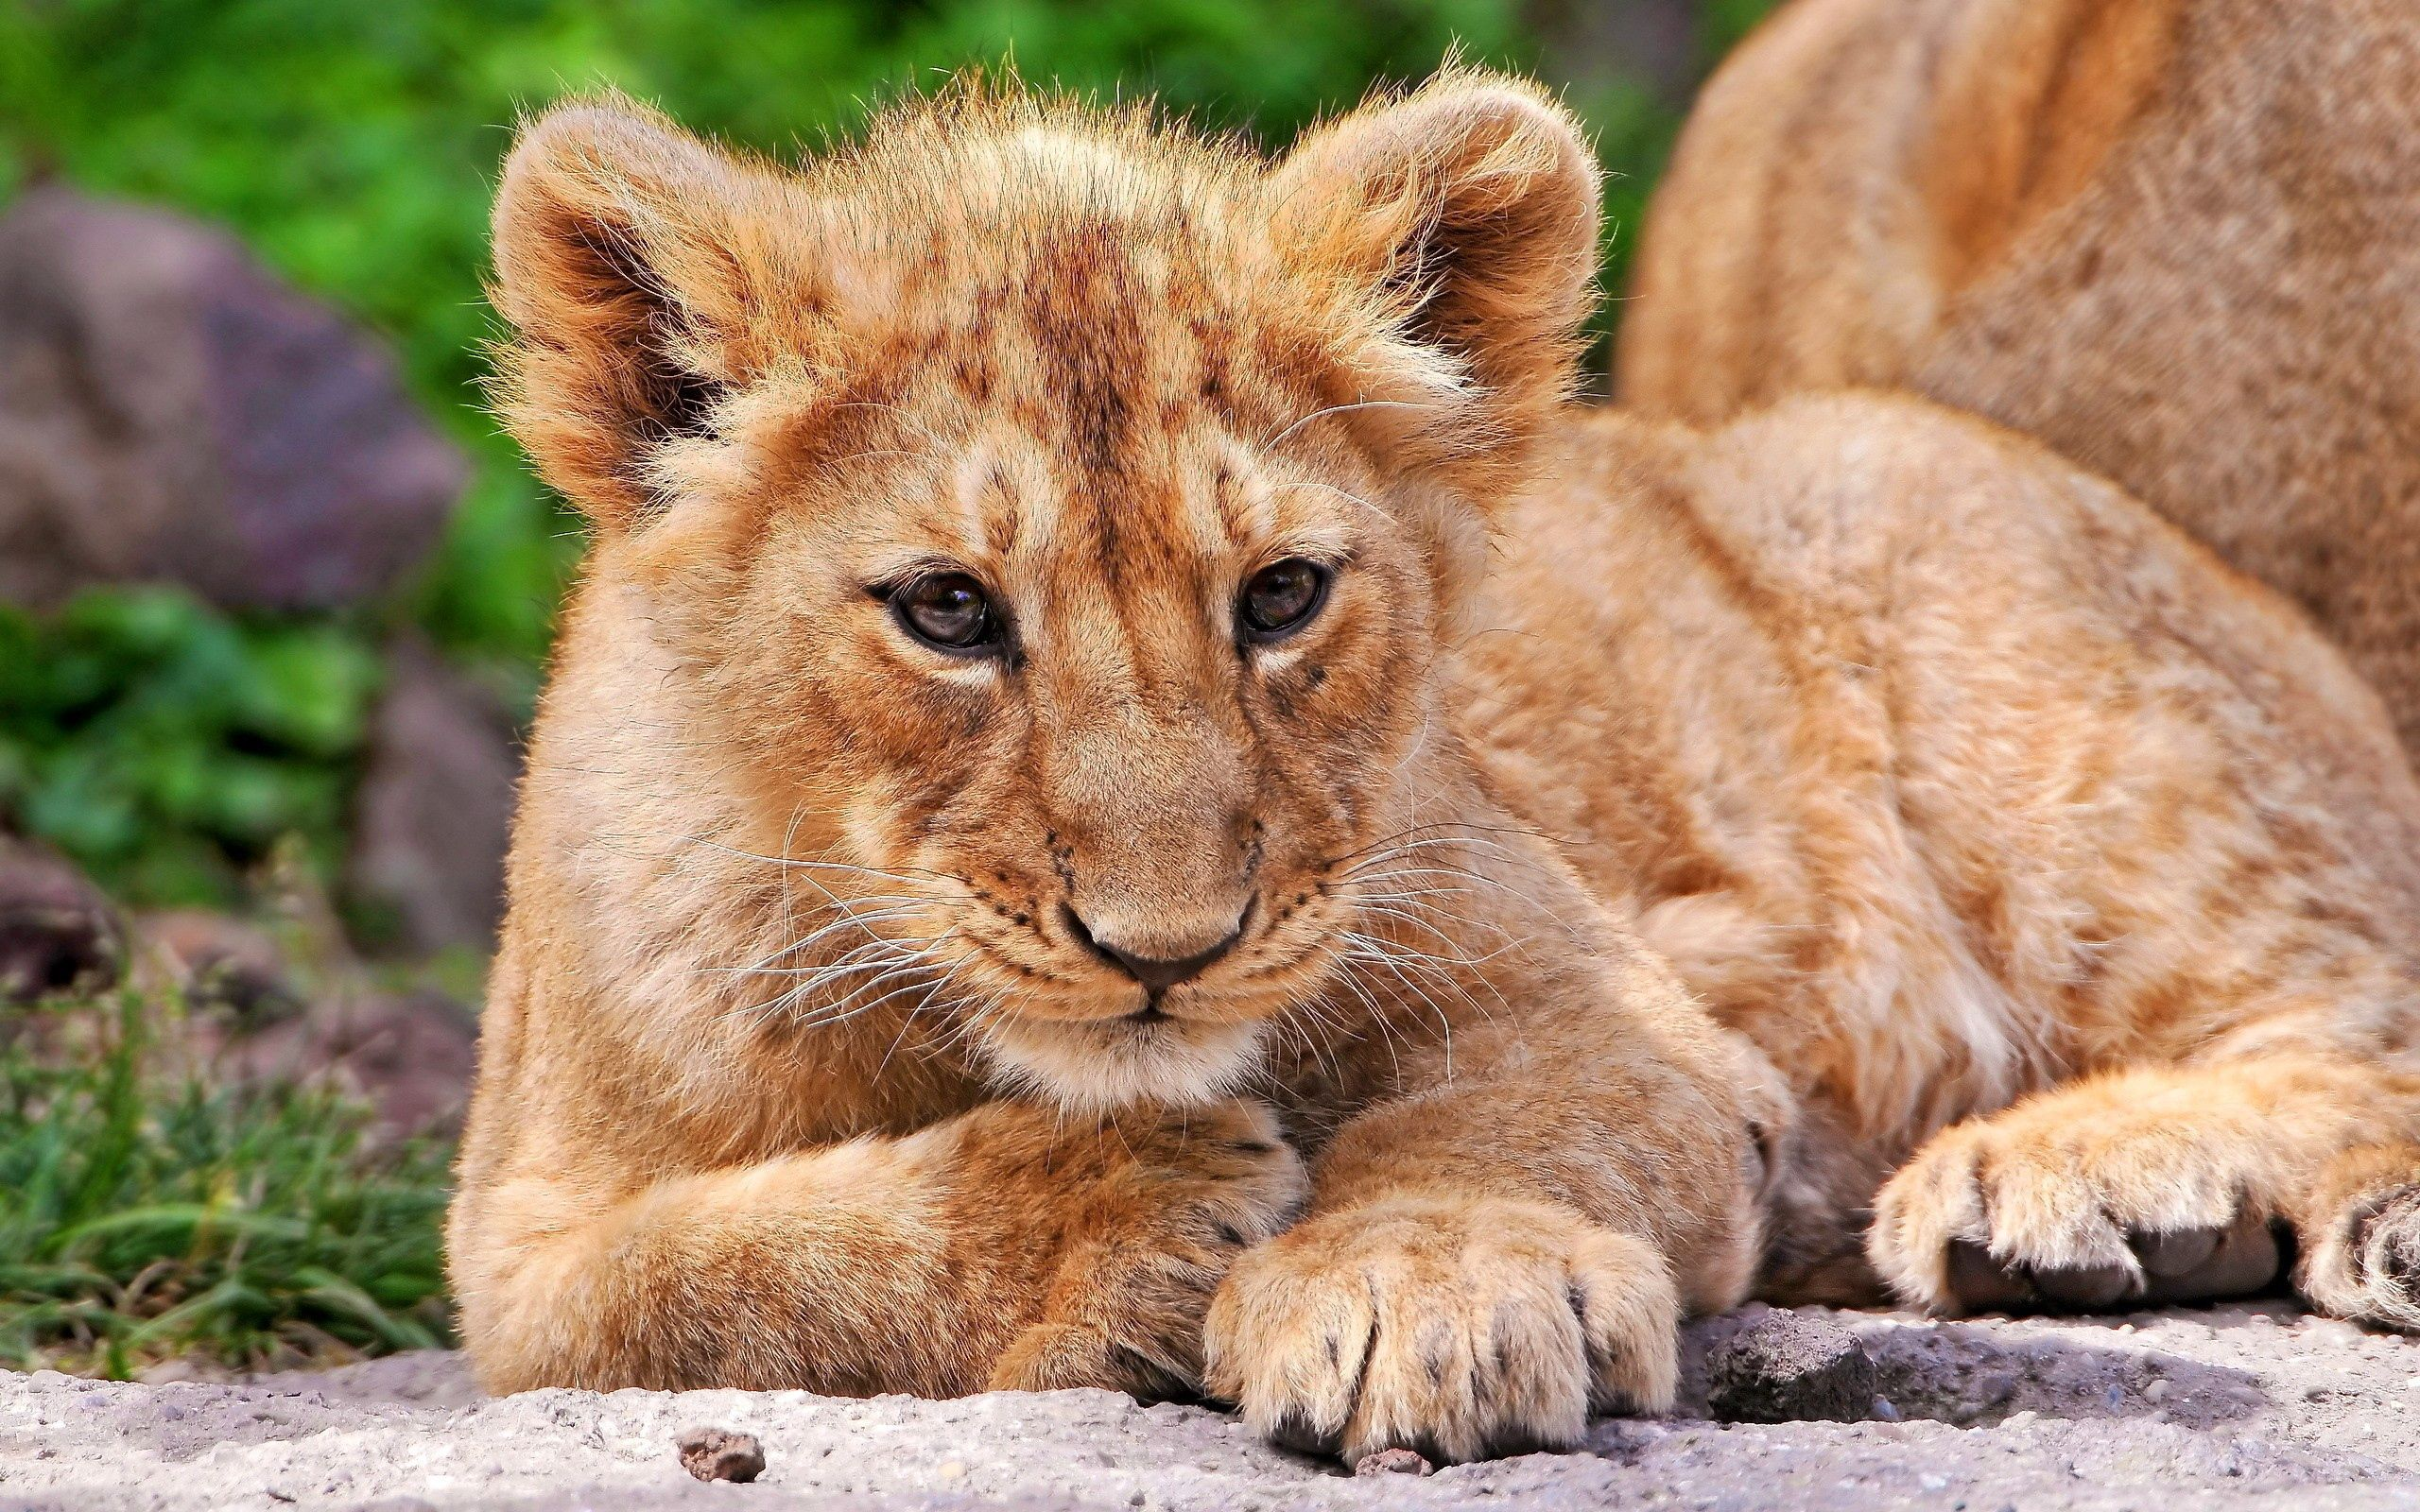 139712 download wallpaper Animals, Lion Cub, Lion, To Lie Down, Lie, Kid, Tot, Expectation, Waiting, Fear screensavers and pictures for free